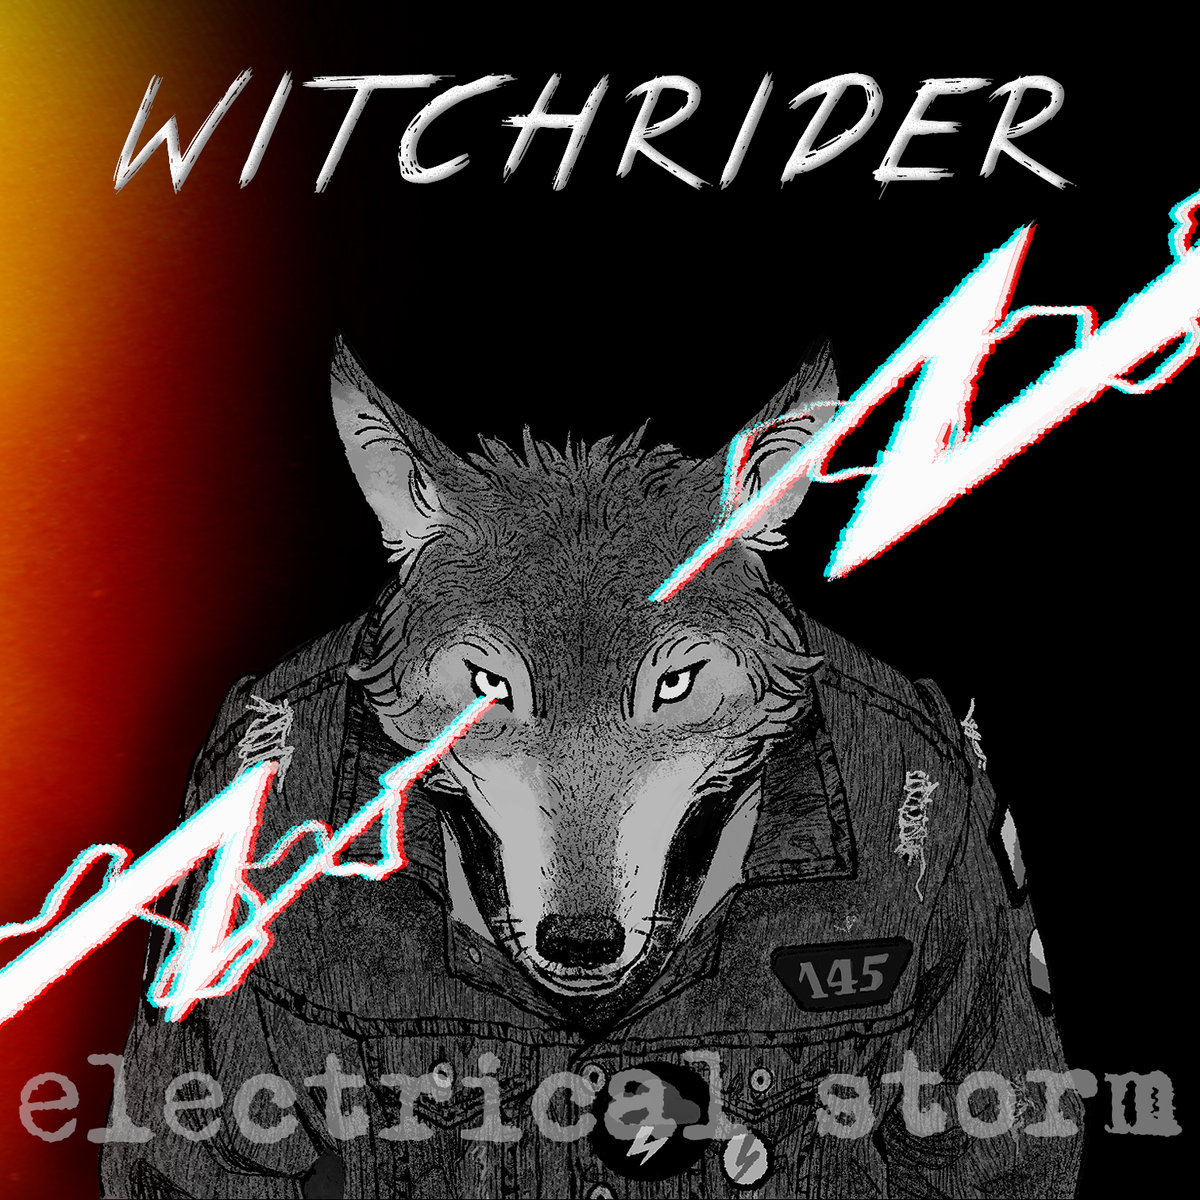 WITCHRIDER - Electrical Storm